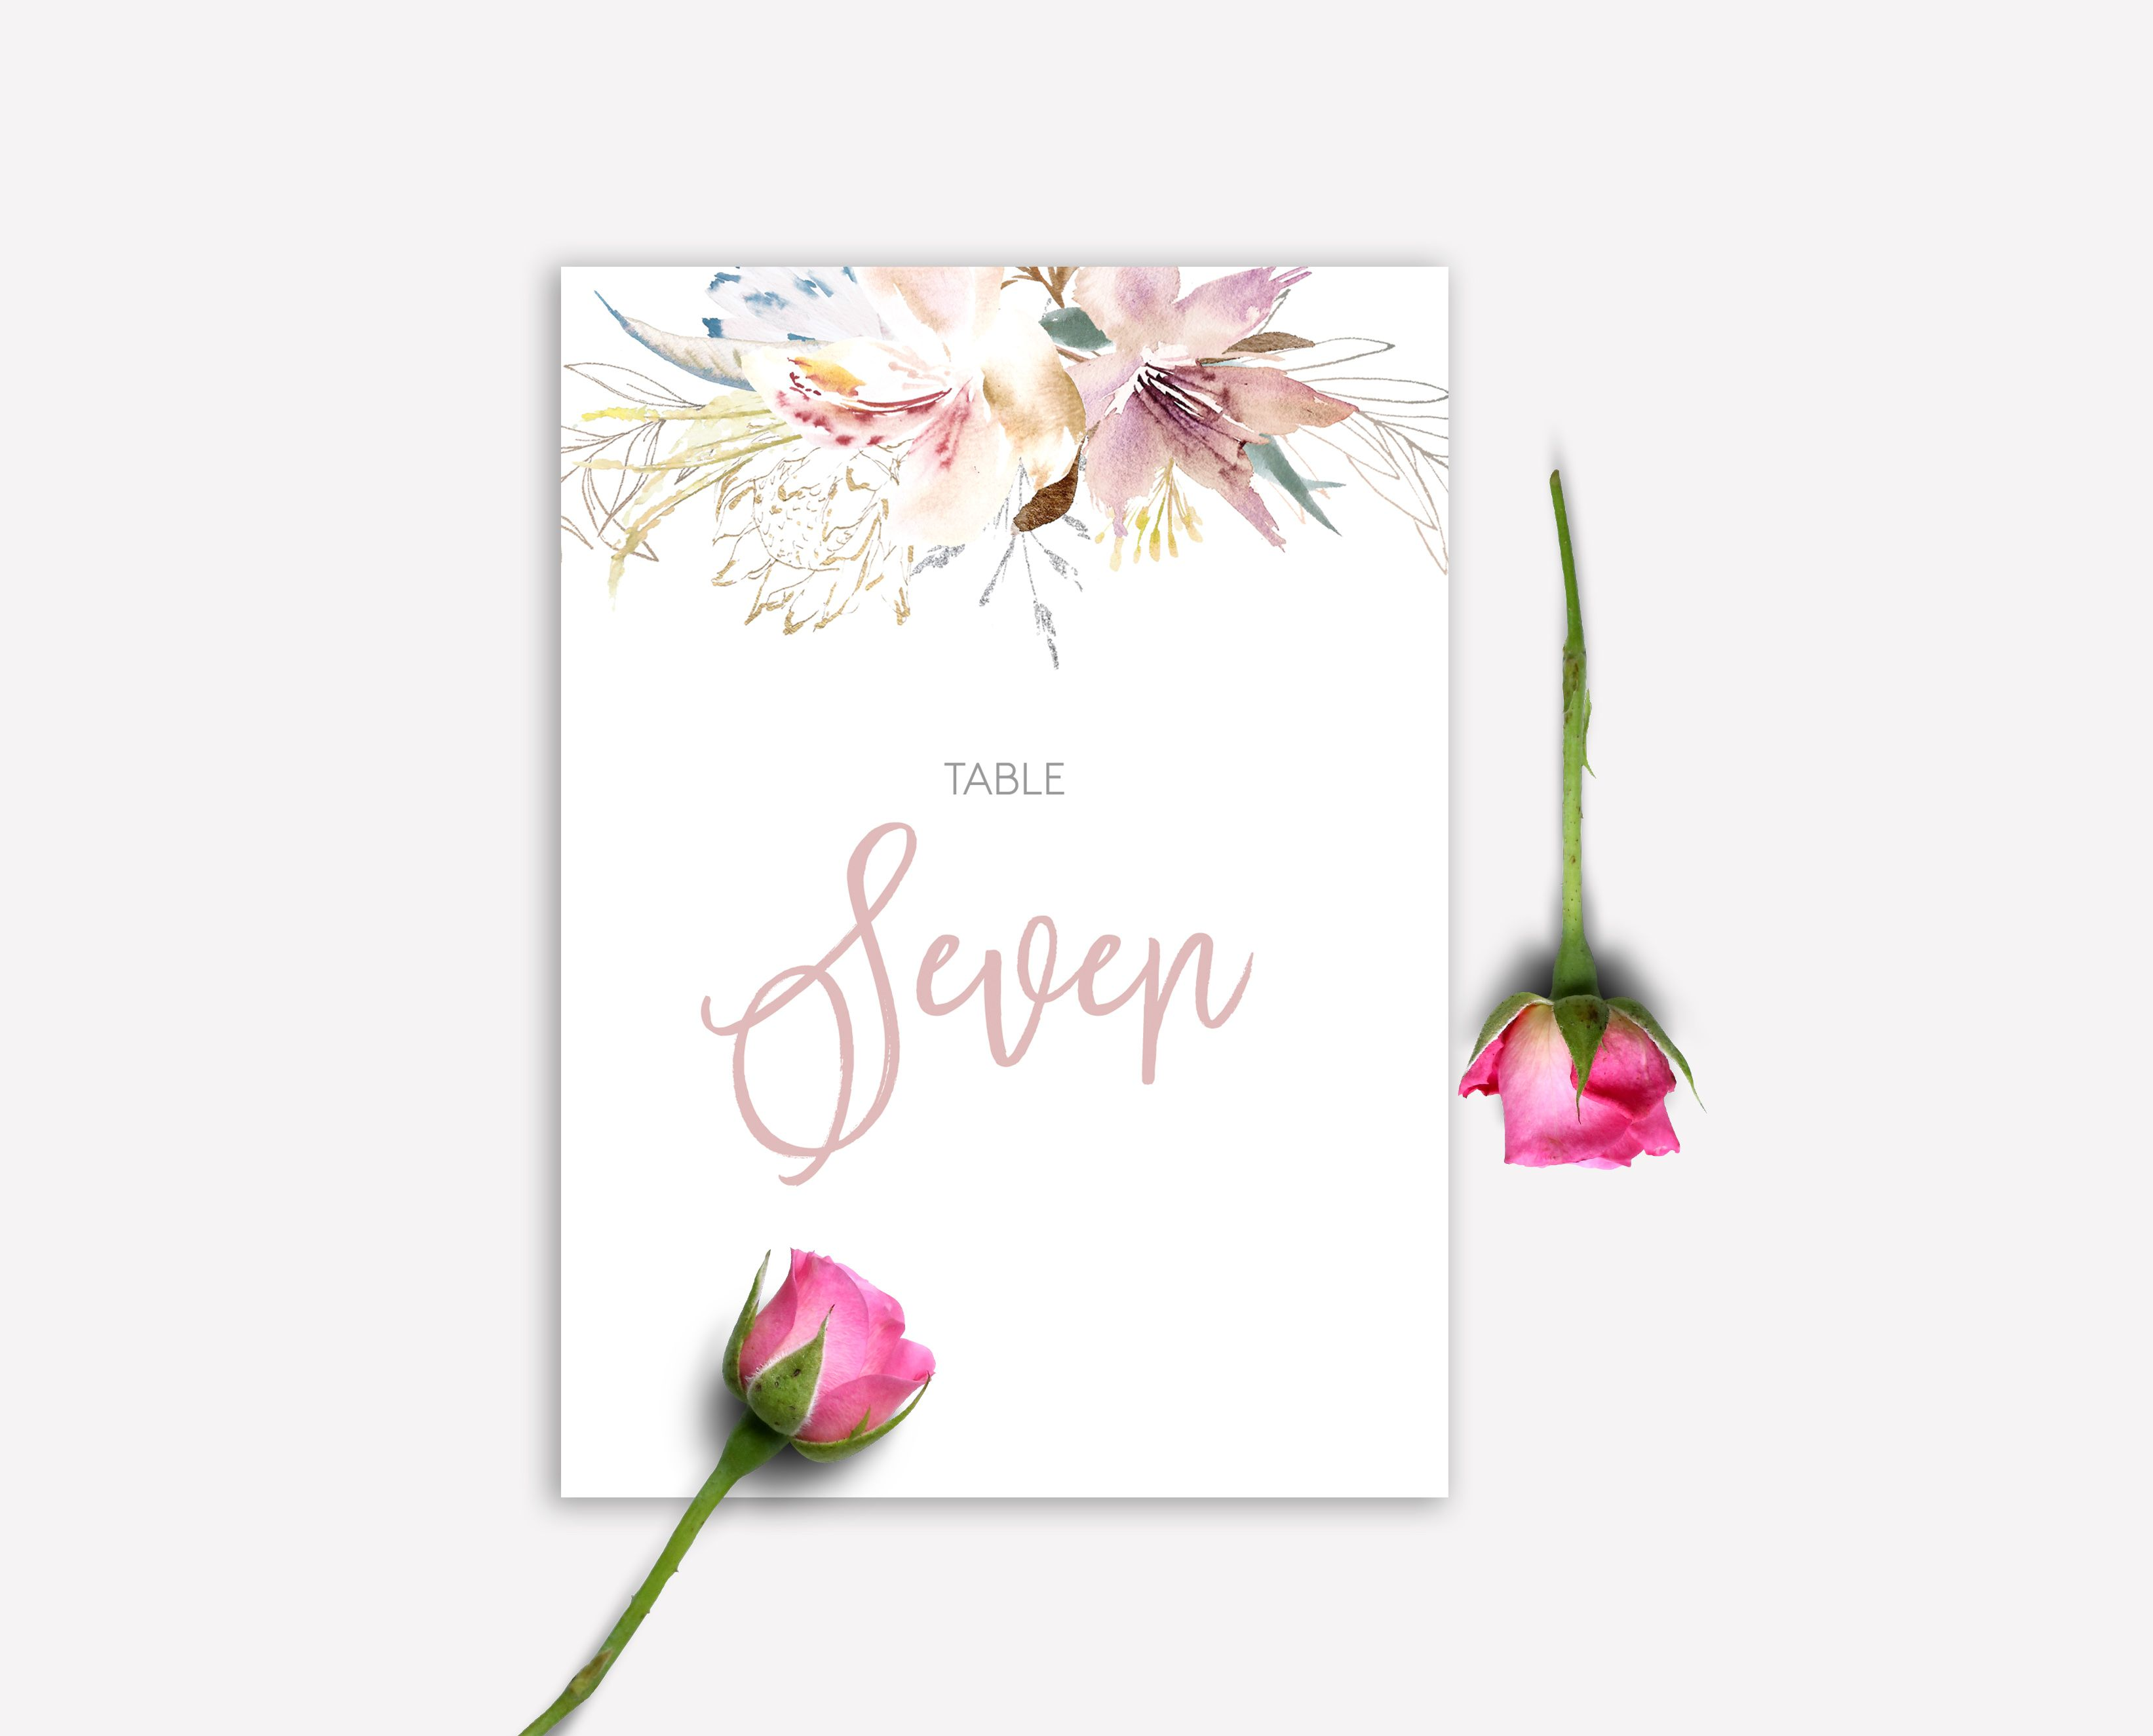 Fleur De Lis Floral Calligraphy Muted Pastel Blue Pink Green